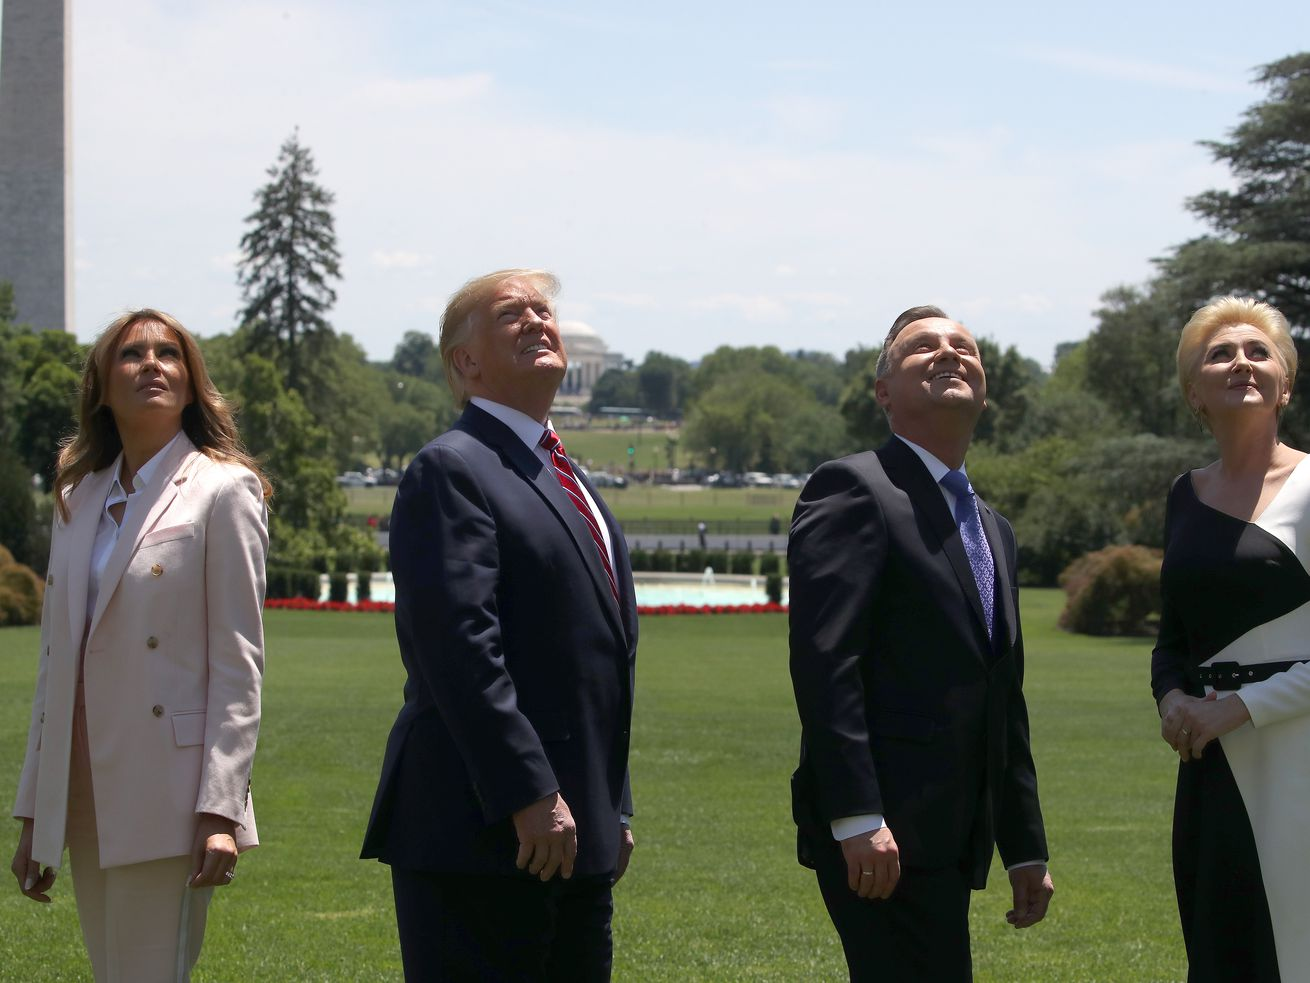 First lady Melania Trump, President Donald Trump, Polish President Andrzej Duda, and first lady of Poland Agata Kornhauser-Duda look up as F-35 fighter jets fly overhead on June 12, 2019.